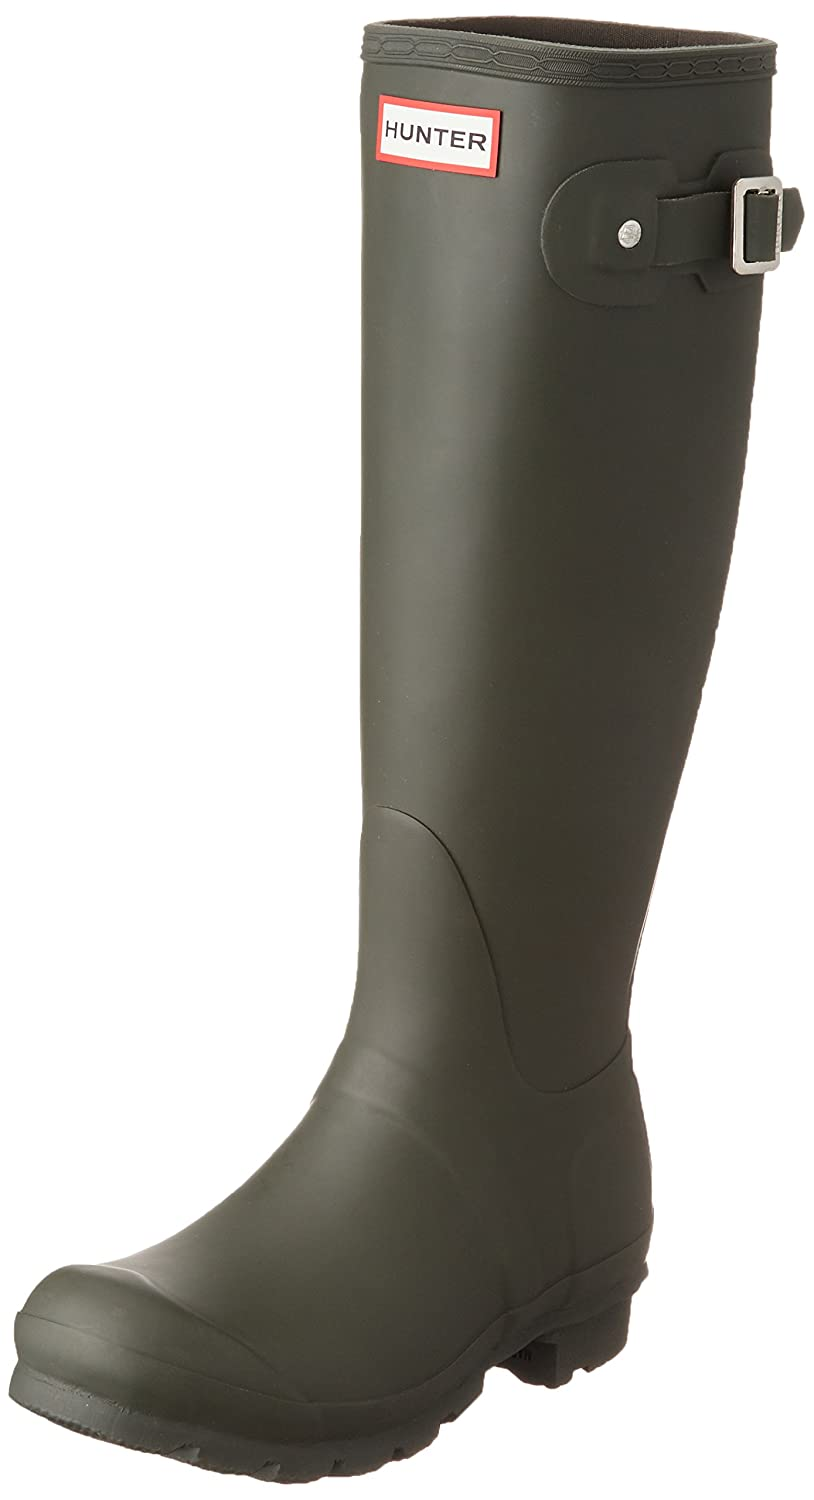 Hunter Damen High Wellington Boots Gummistiefel, Grün (Green HGR), 42 EU